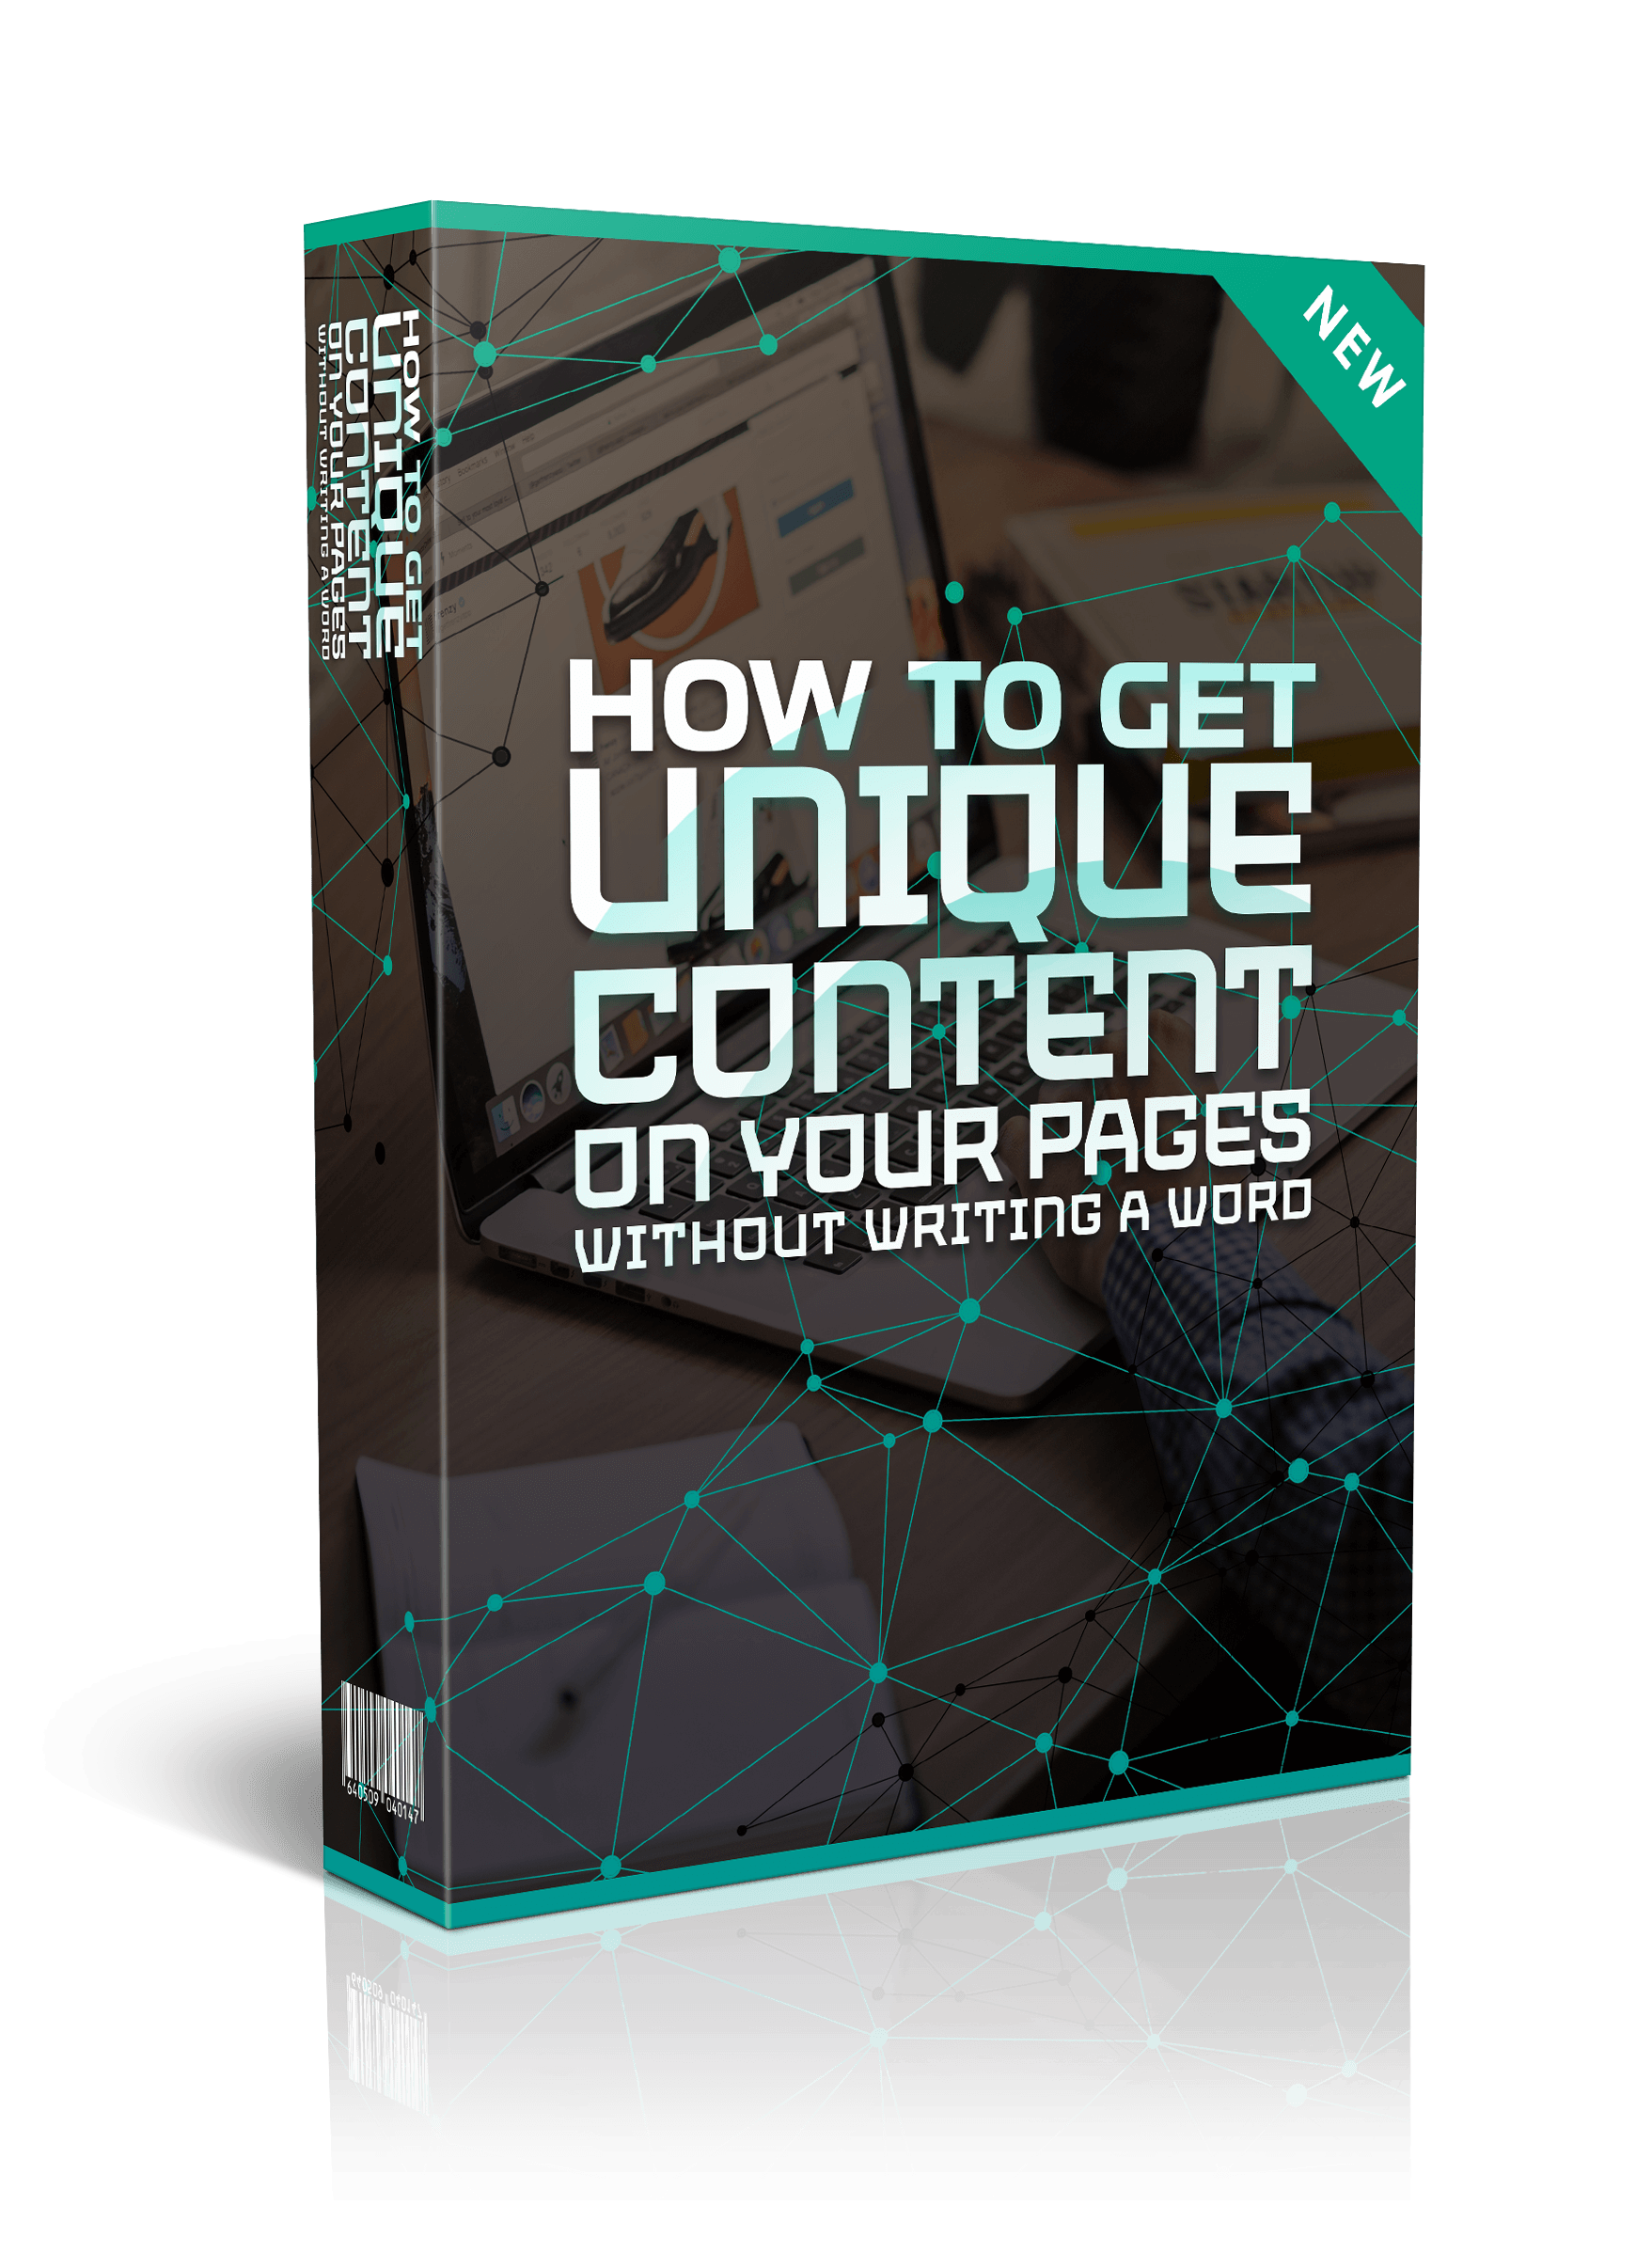 23. How-To-Get-Unique-Content-On-Your-Pages-Without-Writing-A-Word